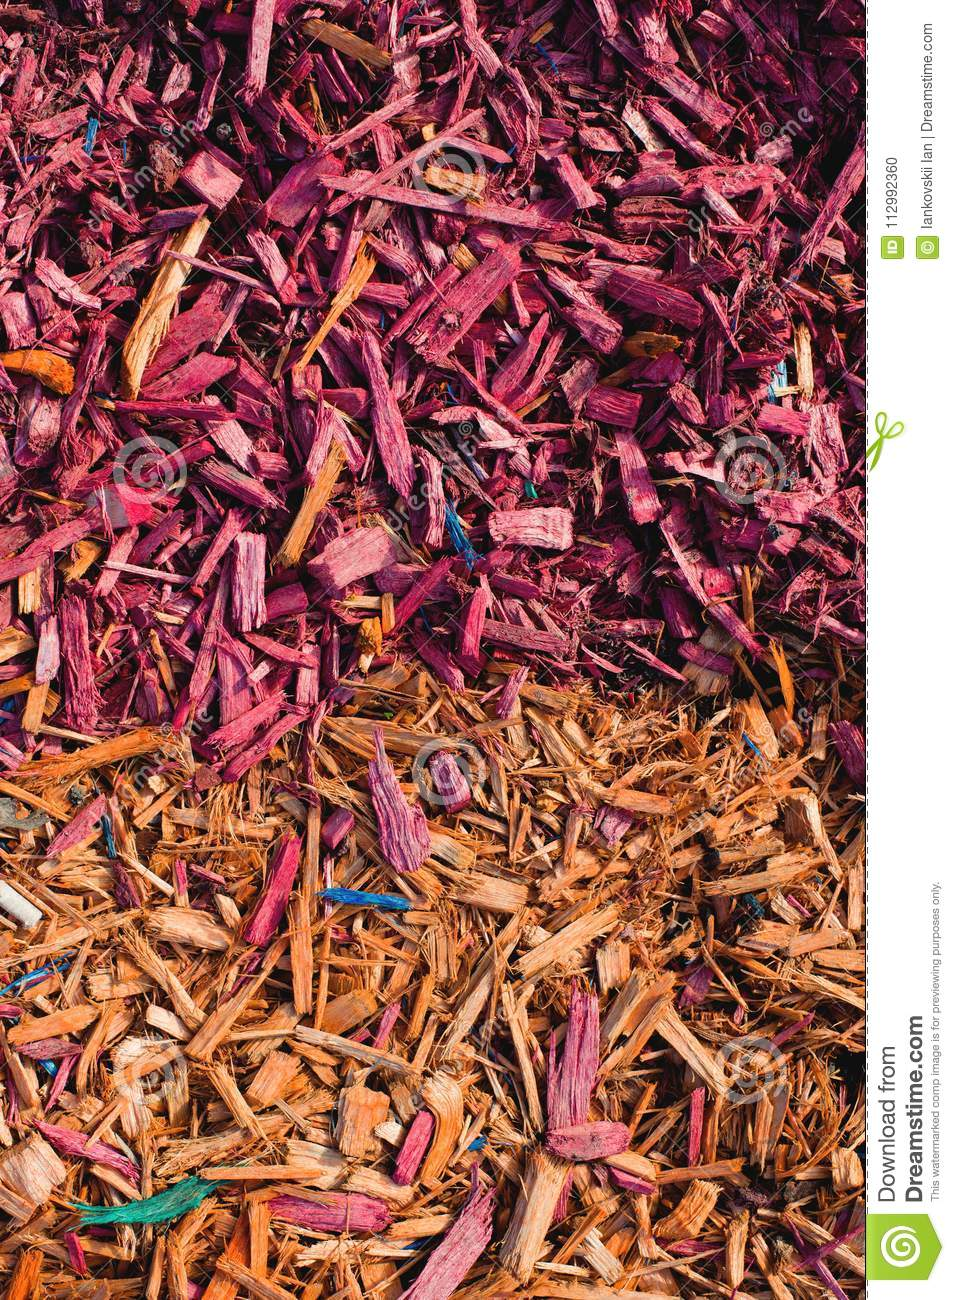 Textured background decorative colored sawdust for finishing flowerbeds in the winter season. Yellow red sawdust